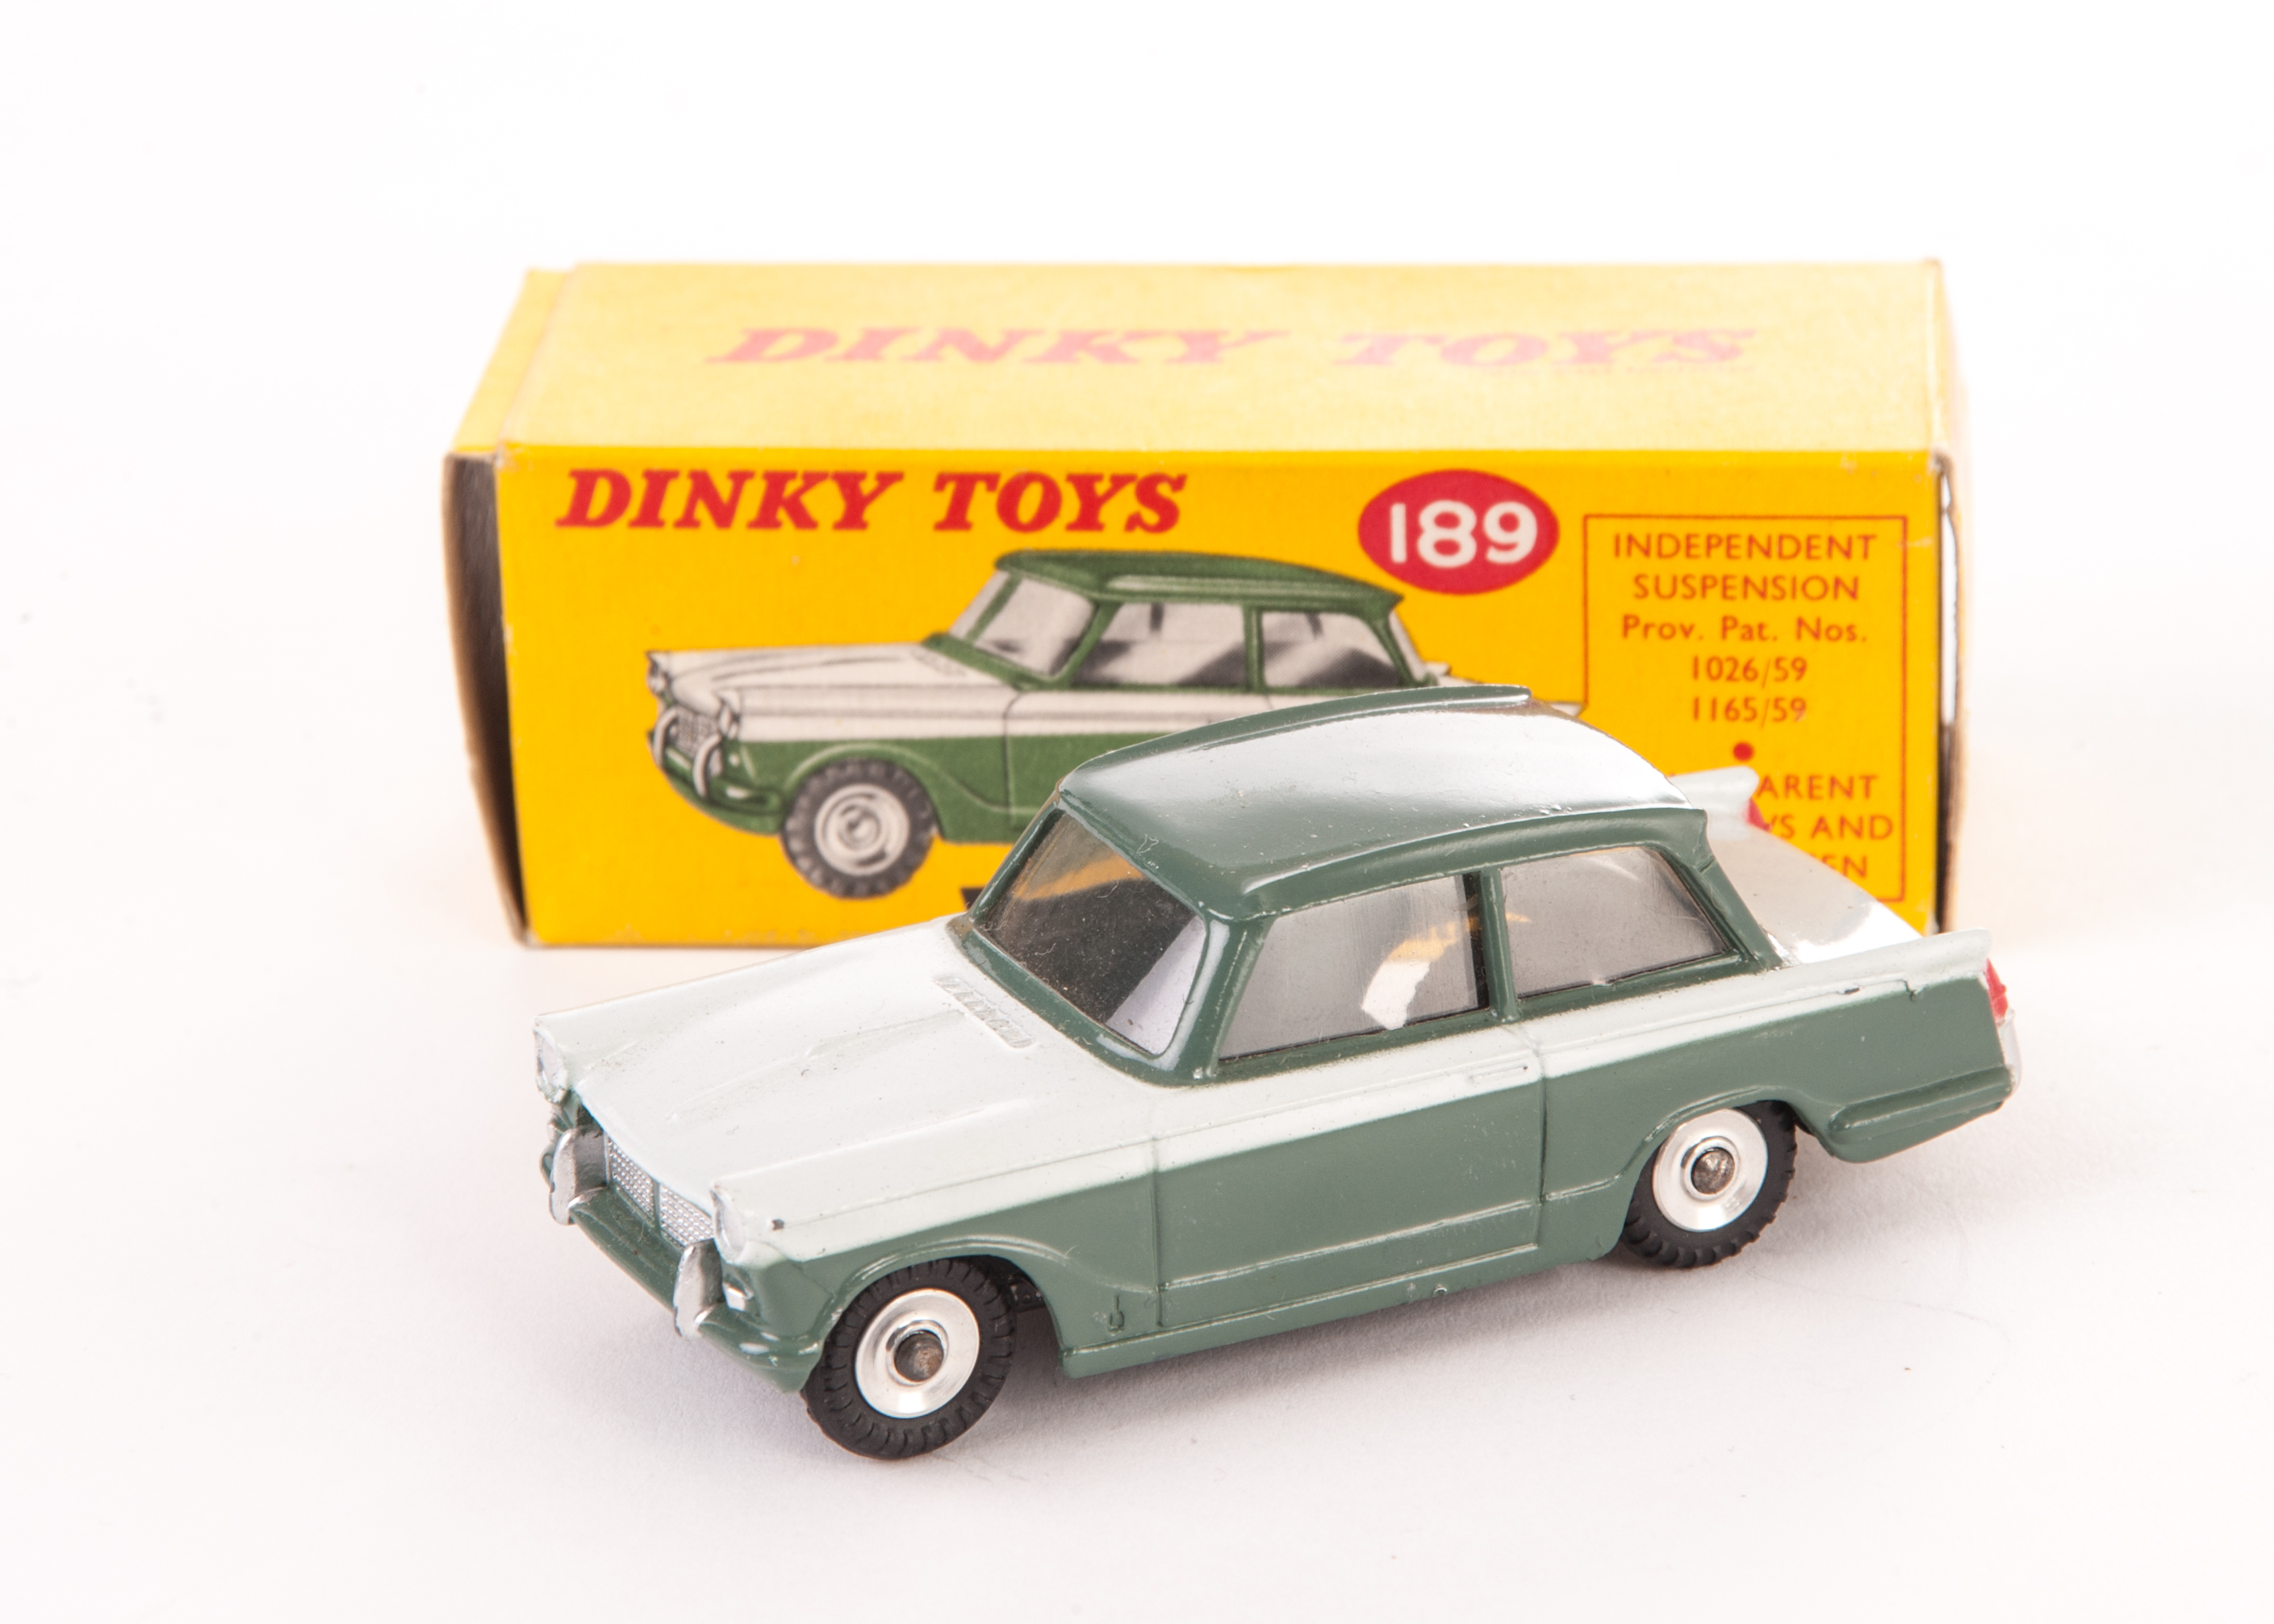 a rare dinky toys 189 triumph herald special issue in two tone lower body and roof lichfield gre. Black Bedroom Furniture Sets. Home Design Ideas